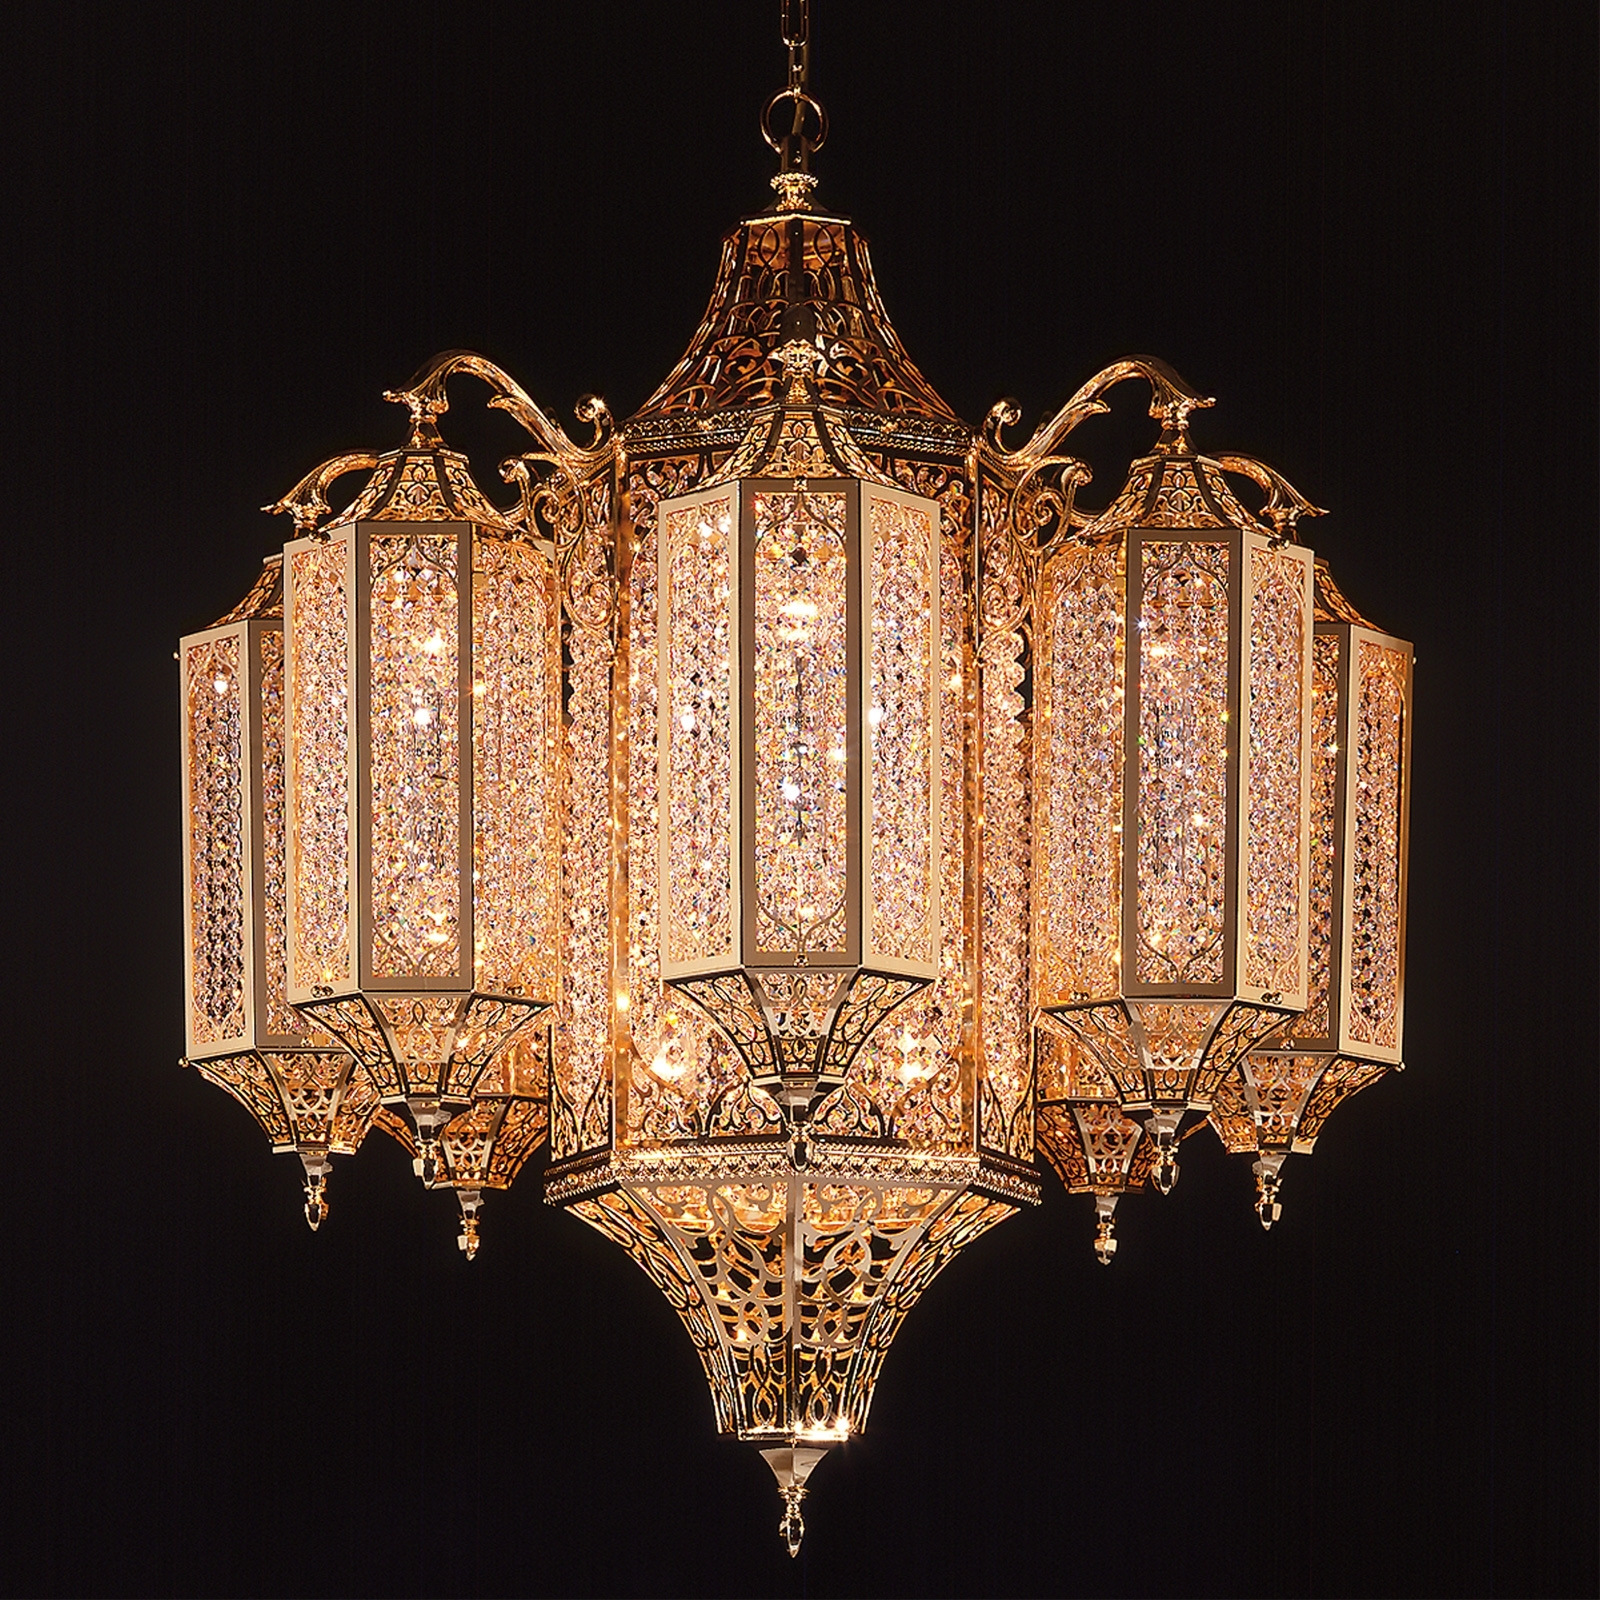 Trendy Expensive Chandeliers Pertaining To Light : Luxuryndeliers Expensivendeliersluxury Crystal Brands And (View 2 of 15)